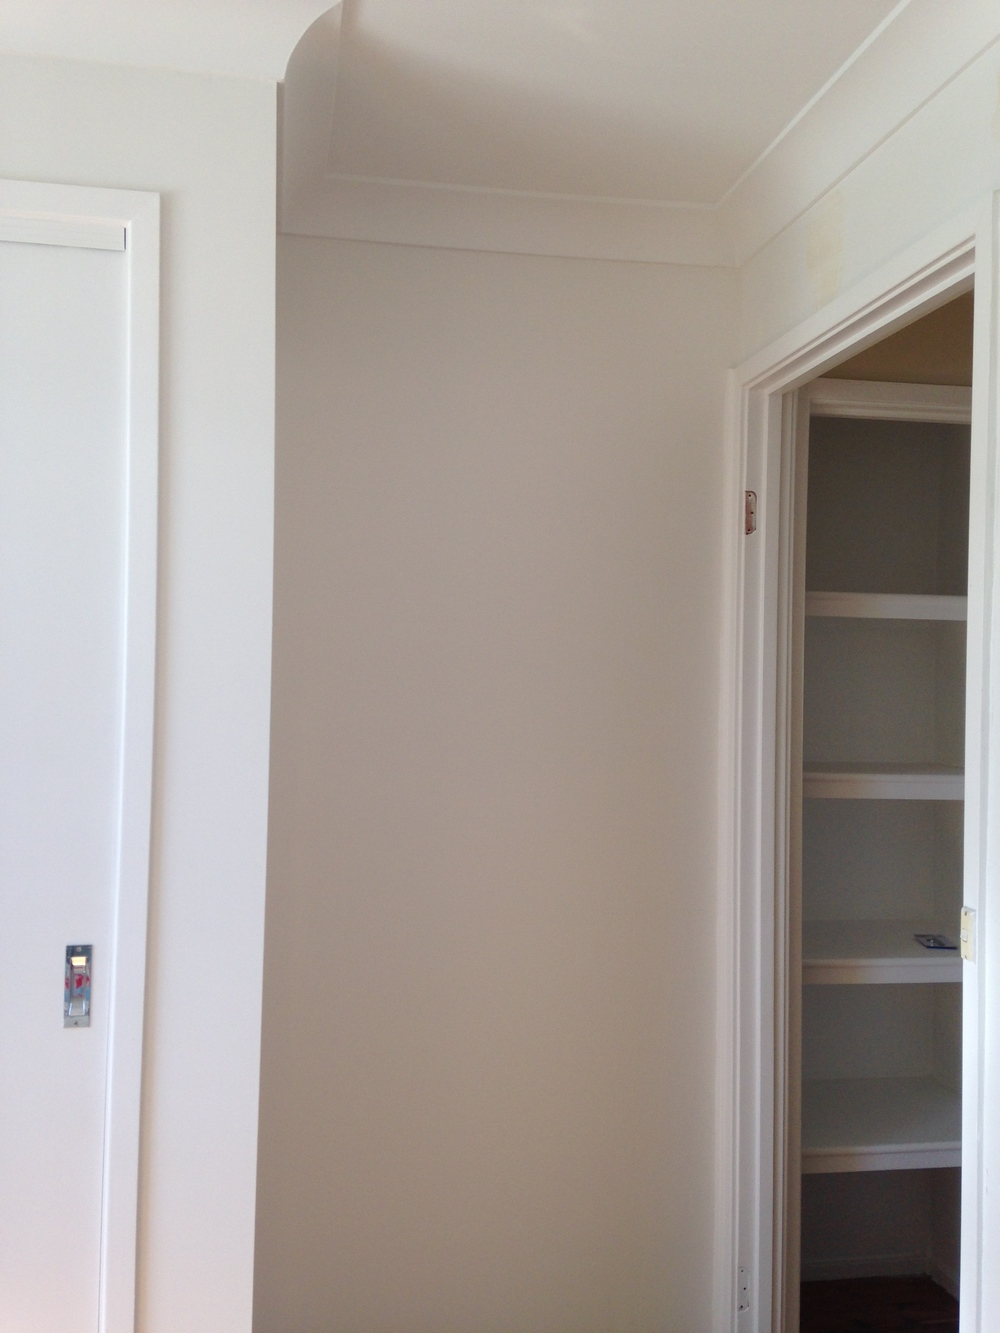 Love, love, love Dulux Natural White, so subtle but you can see the difference when it's next to Vivid White